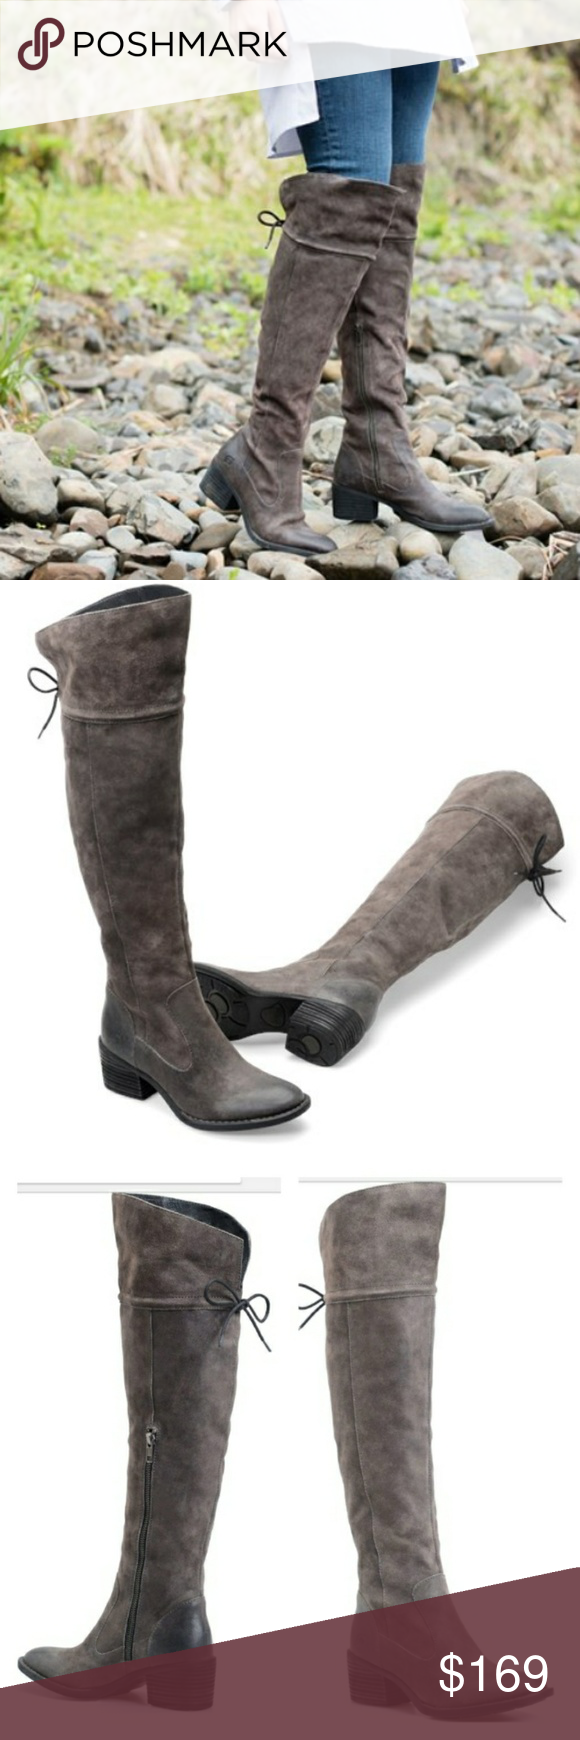 176bd281d48 Born Gallinara Petro Gray Over the Knee Boots Gorgeous handcrafted Born Over  the Knee Suede Boots. Leather lining Rubber outsole with ABS heel Tucker  board ...